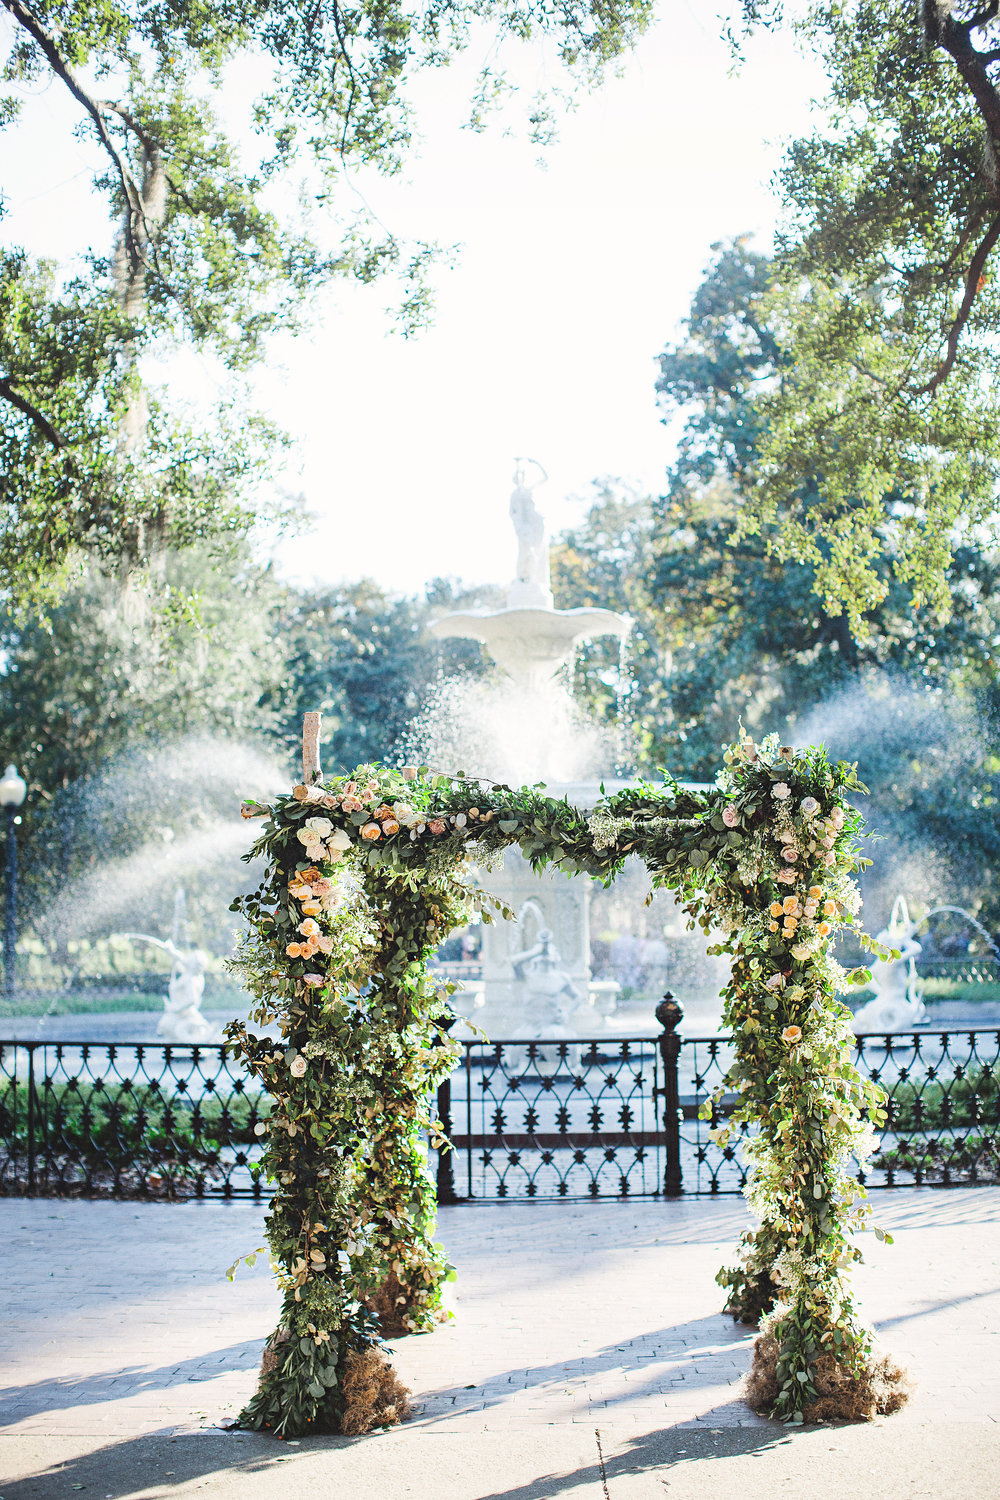 izzy-hudgins-photography-savannah-wedding-ivory-and-beau-bridal-boutique-savannah-wedding-planner-colonial-house-of-flowers-forsyth-park-wedding-old-fort-jackson-wedding-squidwed-films-savannah-boutique-savannah-weddings-27.jpg